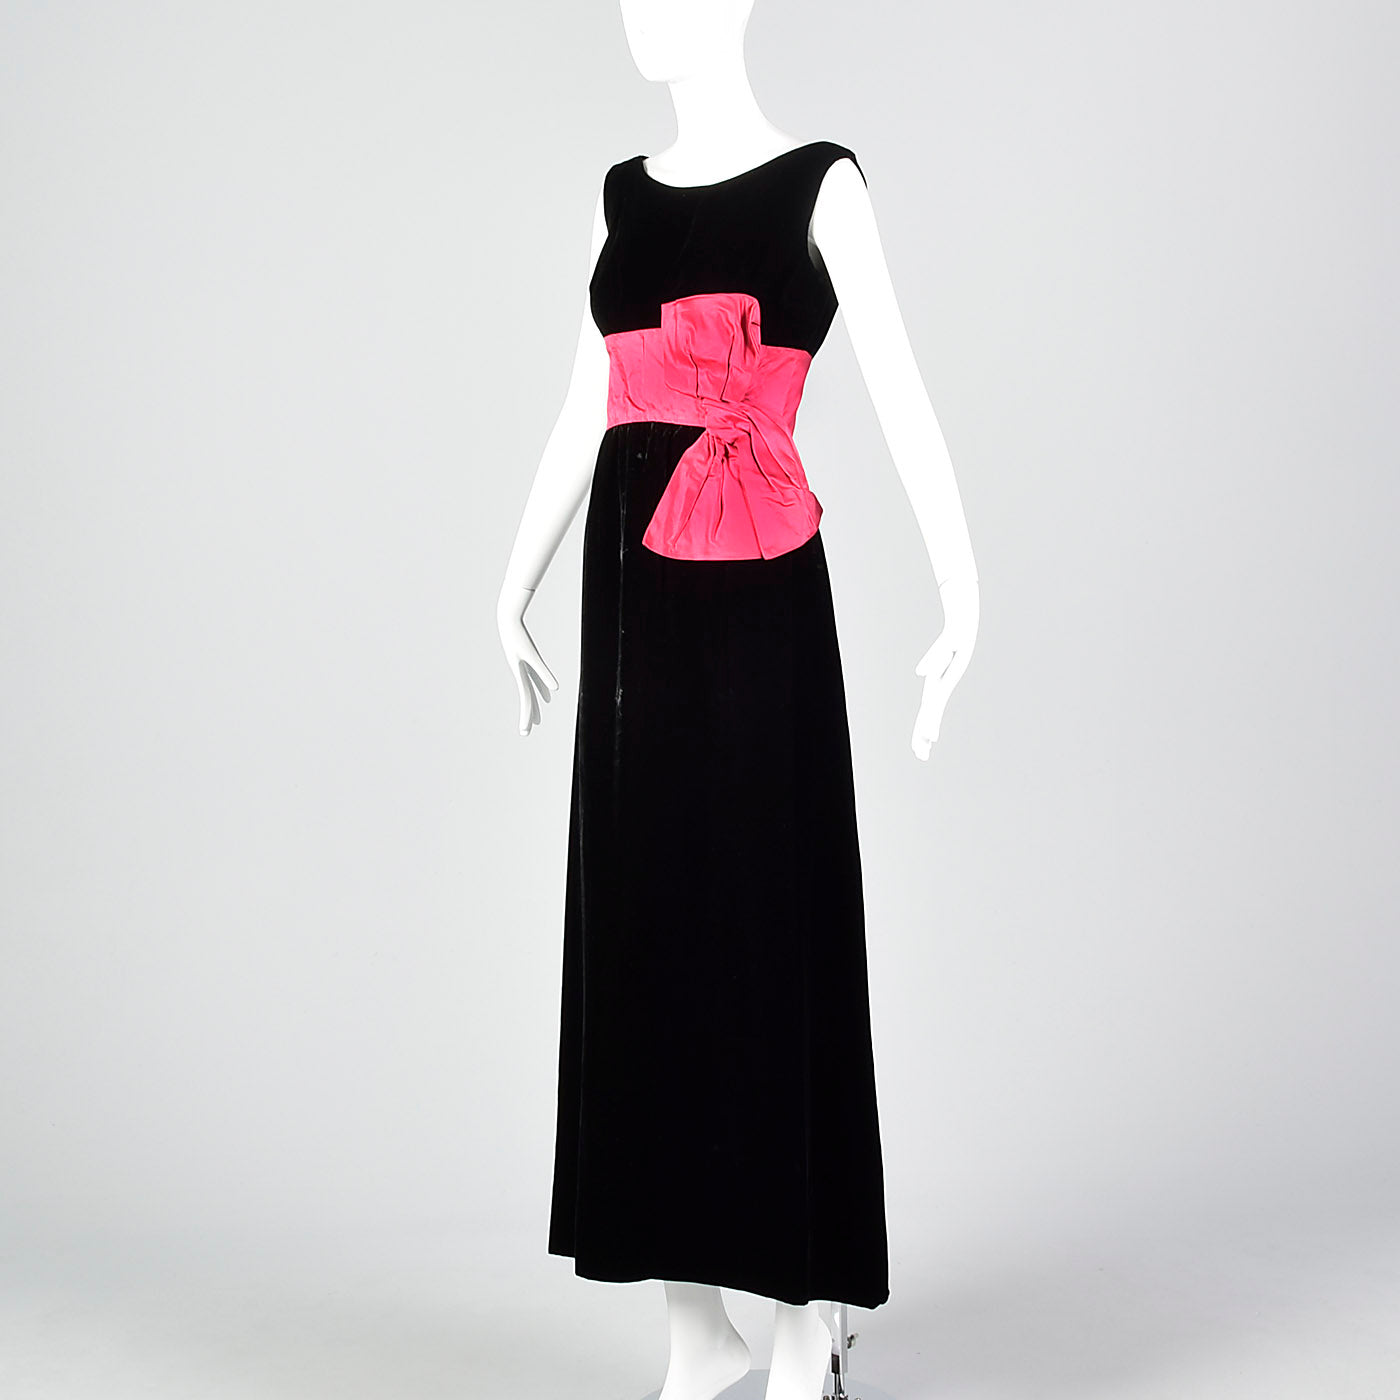 1960s Black Velvet Dress with Pink Cummerbund Waist